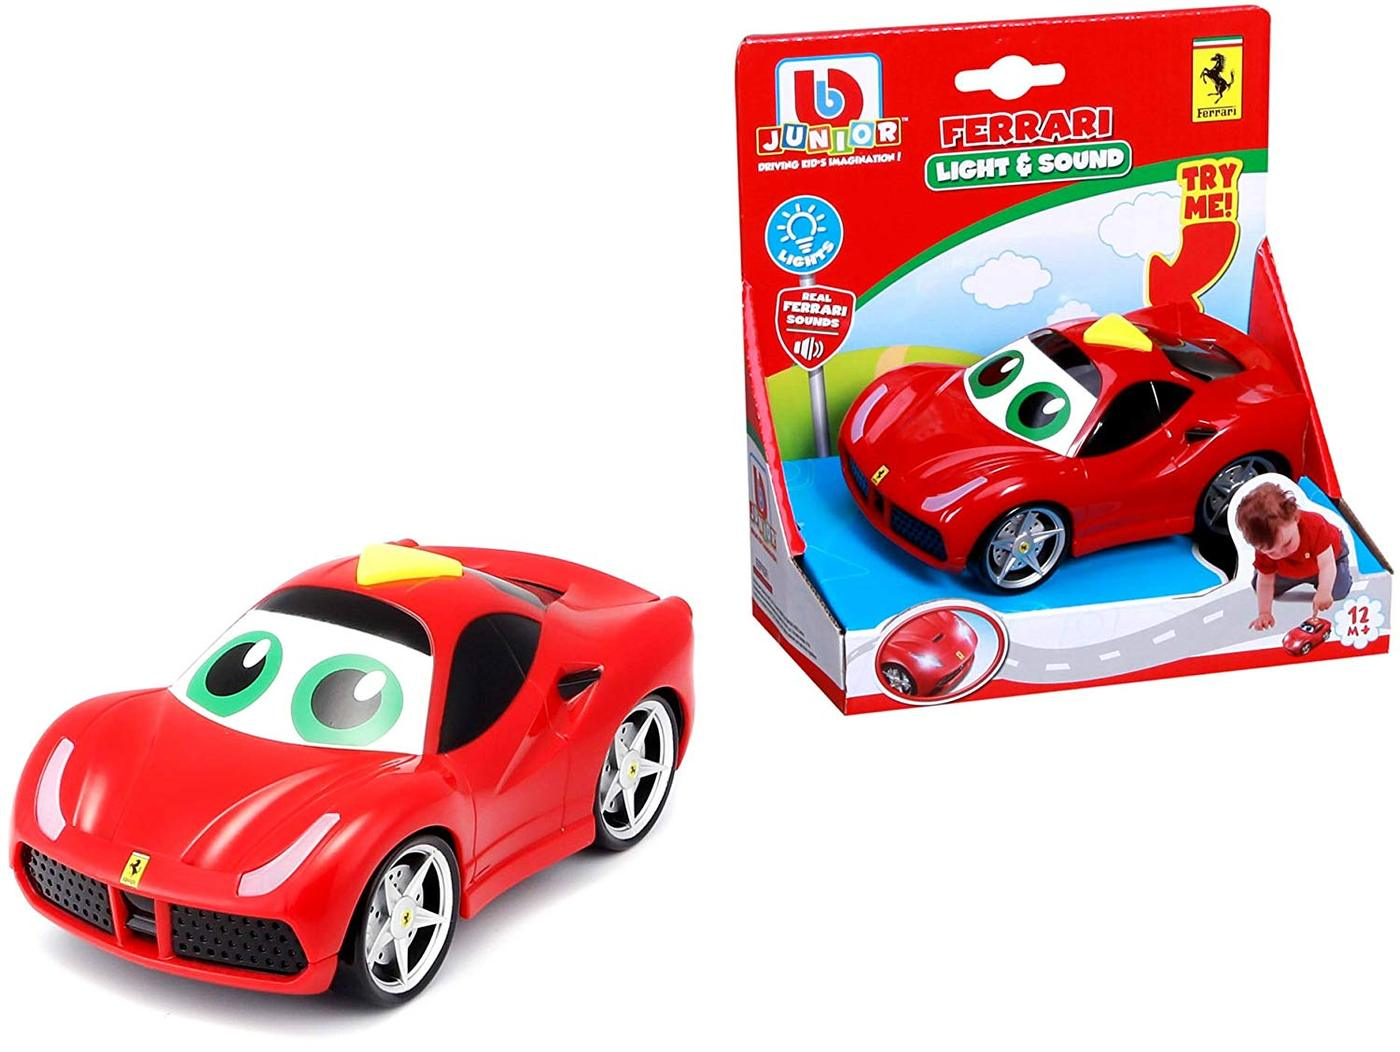 Bburago Junior FERRARI LIGHT & SOUNDS 488 GTB - Wild Willy - Toys Lebanon